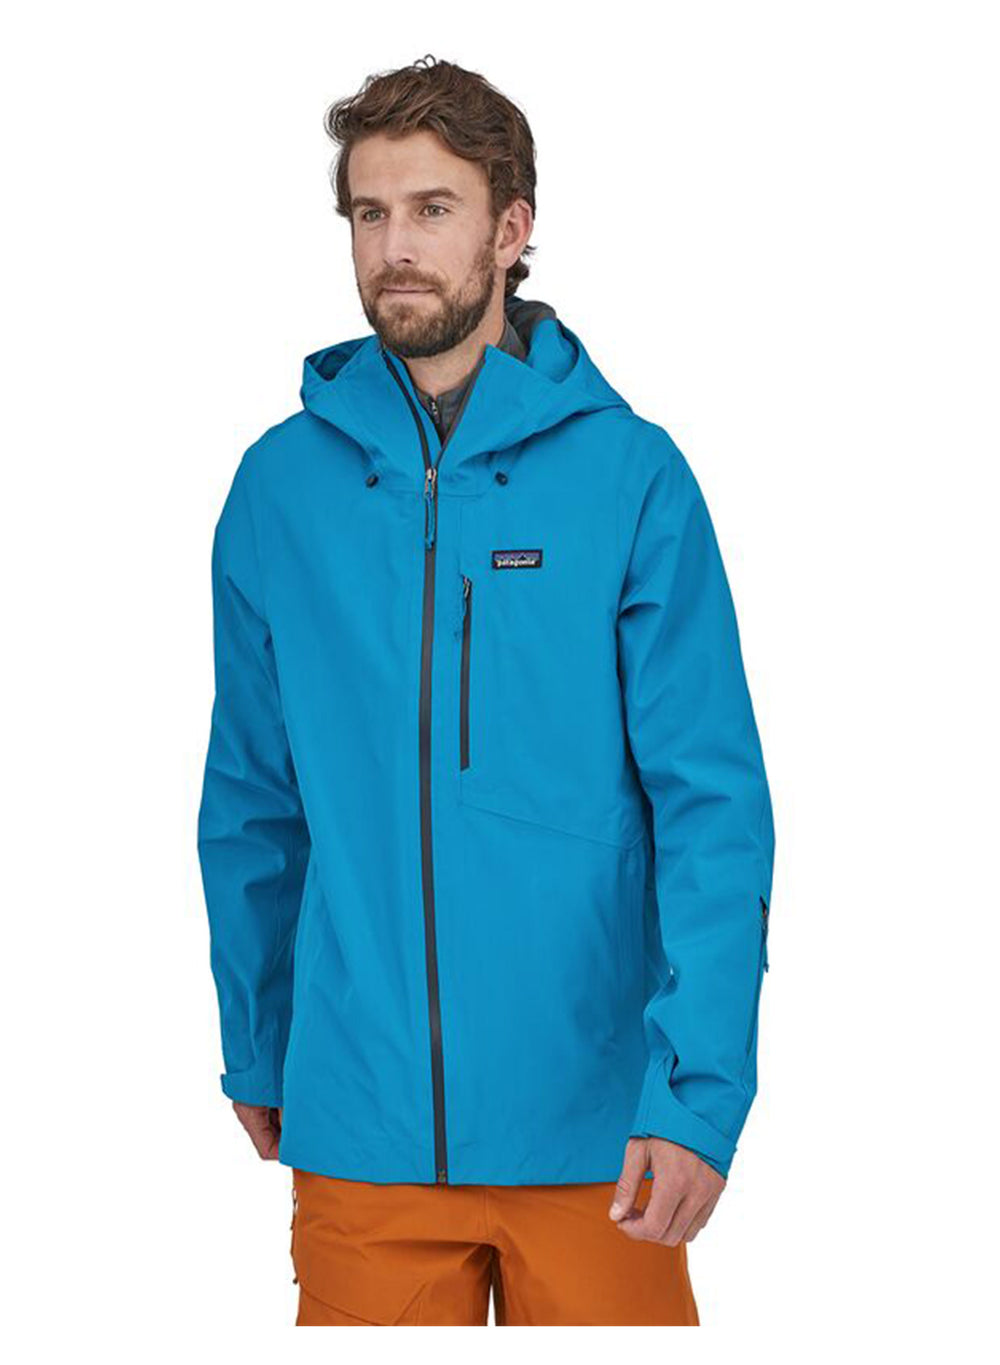 Patagonia Powder Bowl Jacket - Men's